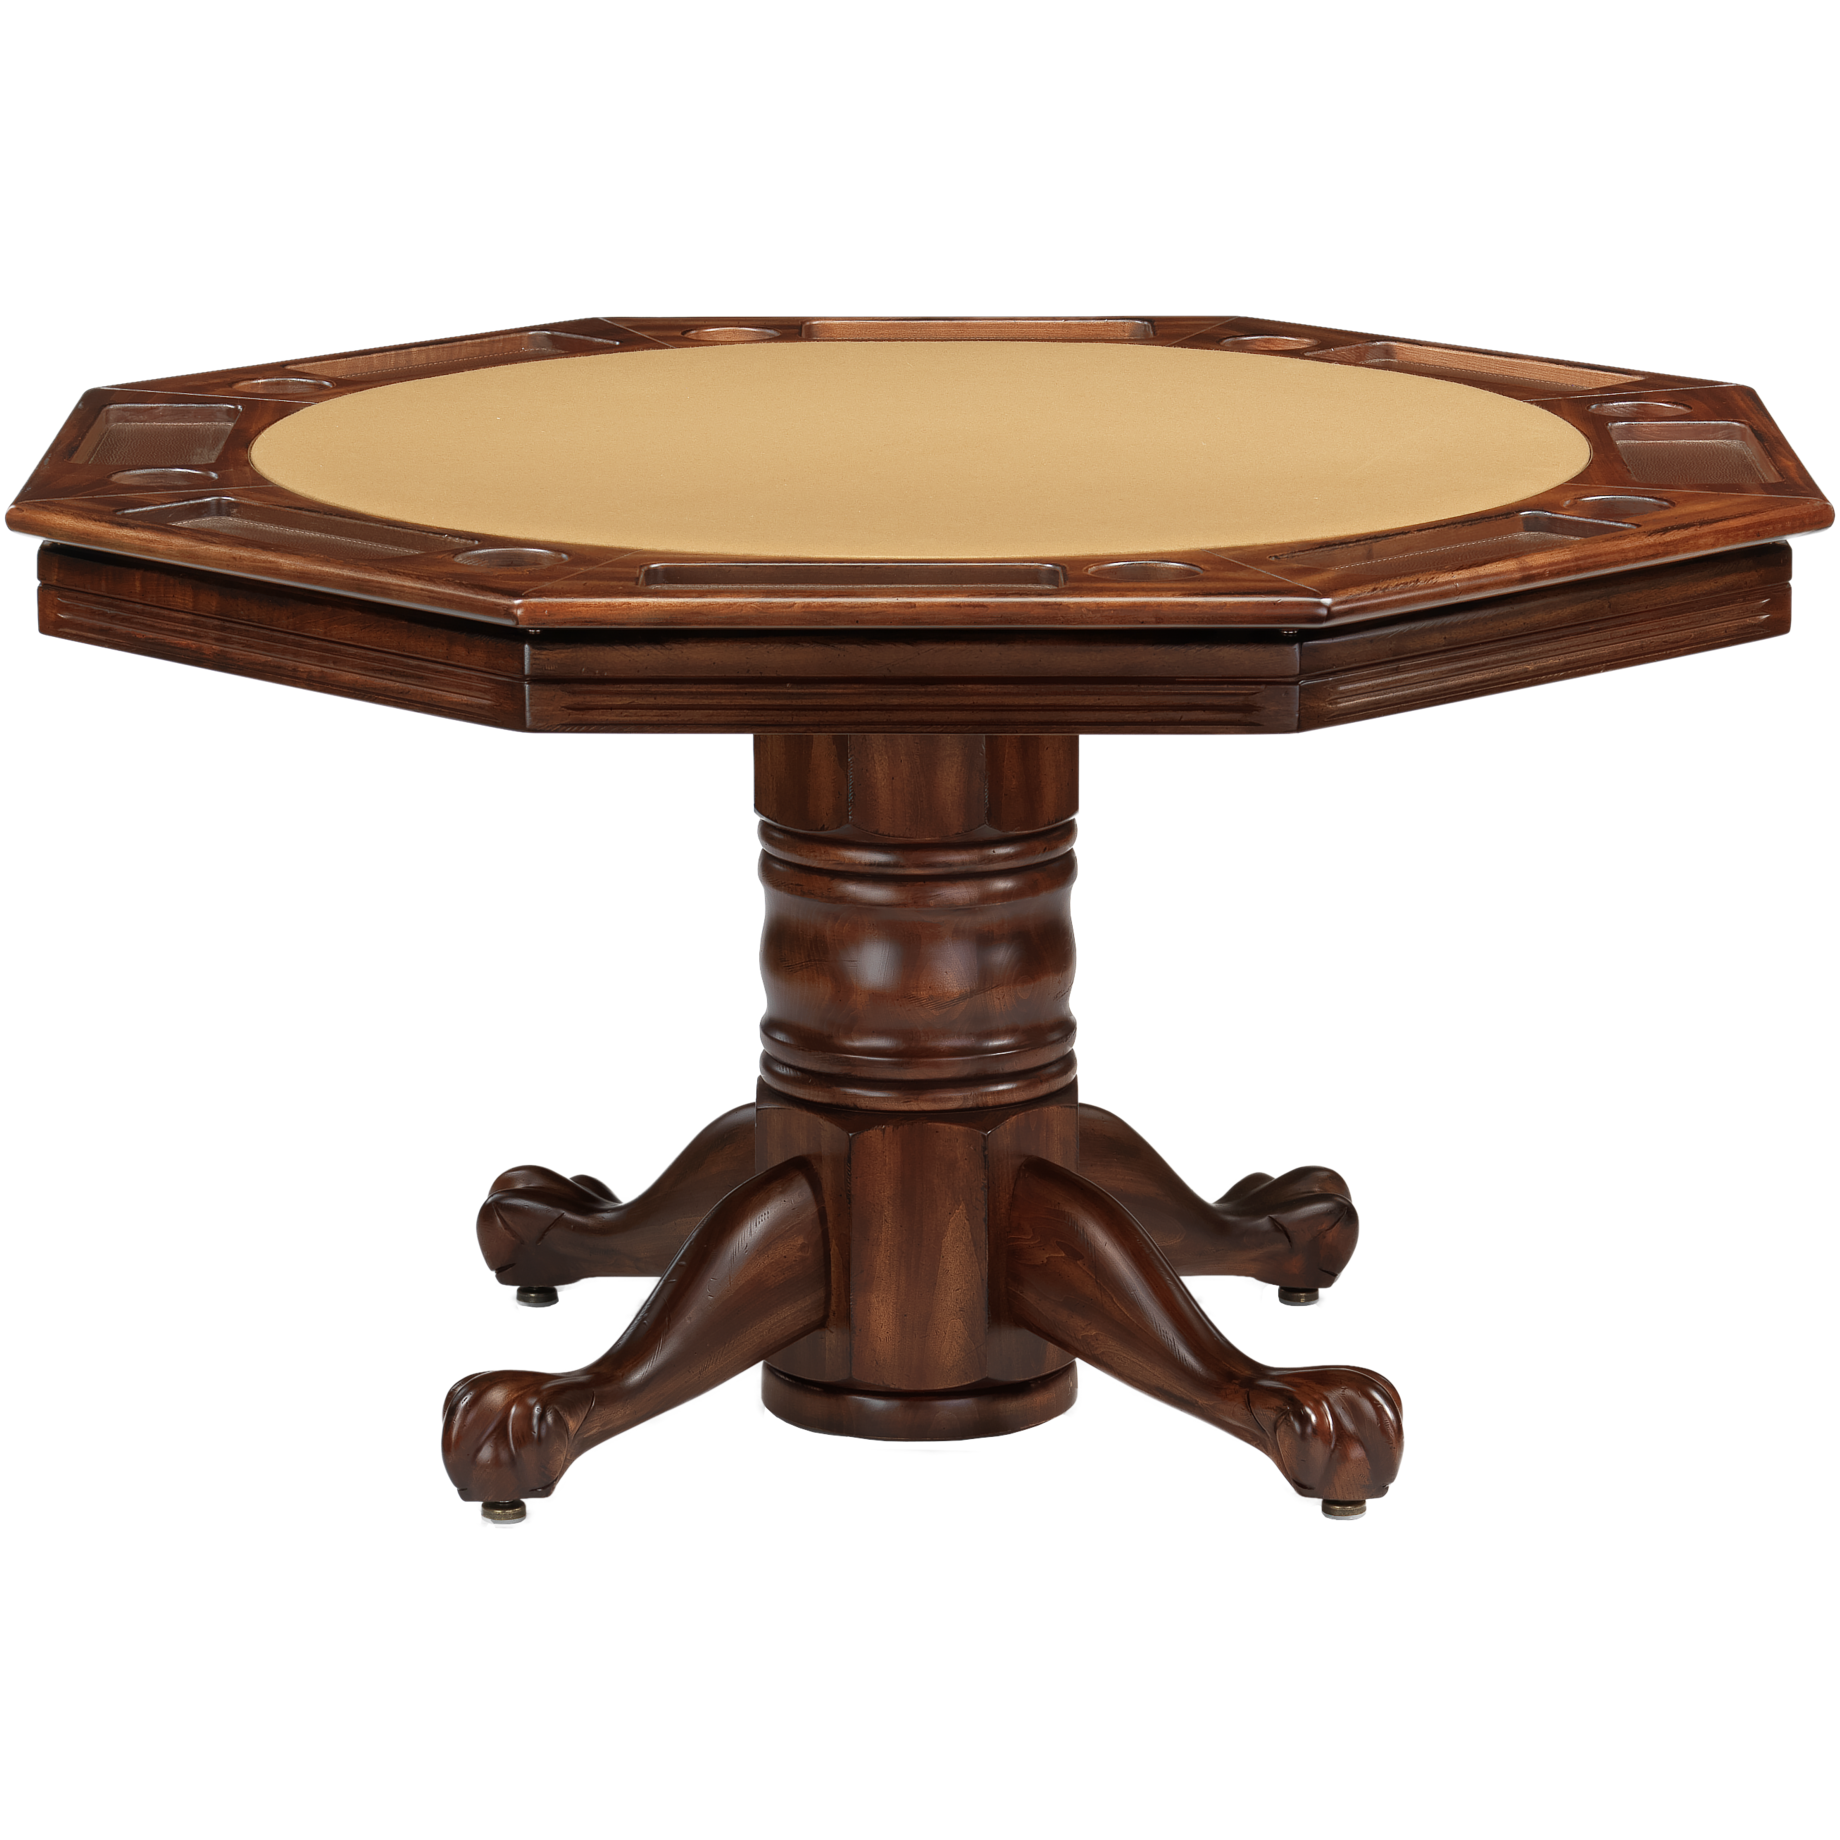 Poker Dining Room Table: Convertible Poker & Dining Table Serrengetti By Darafeev